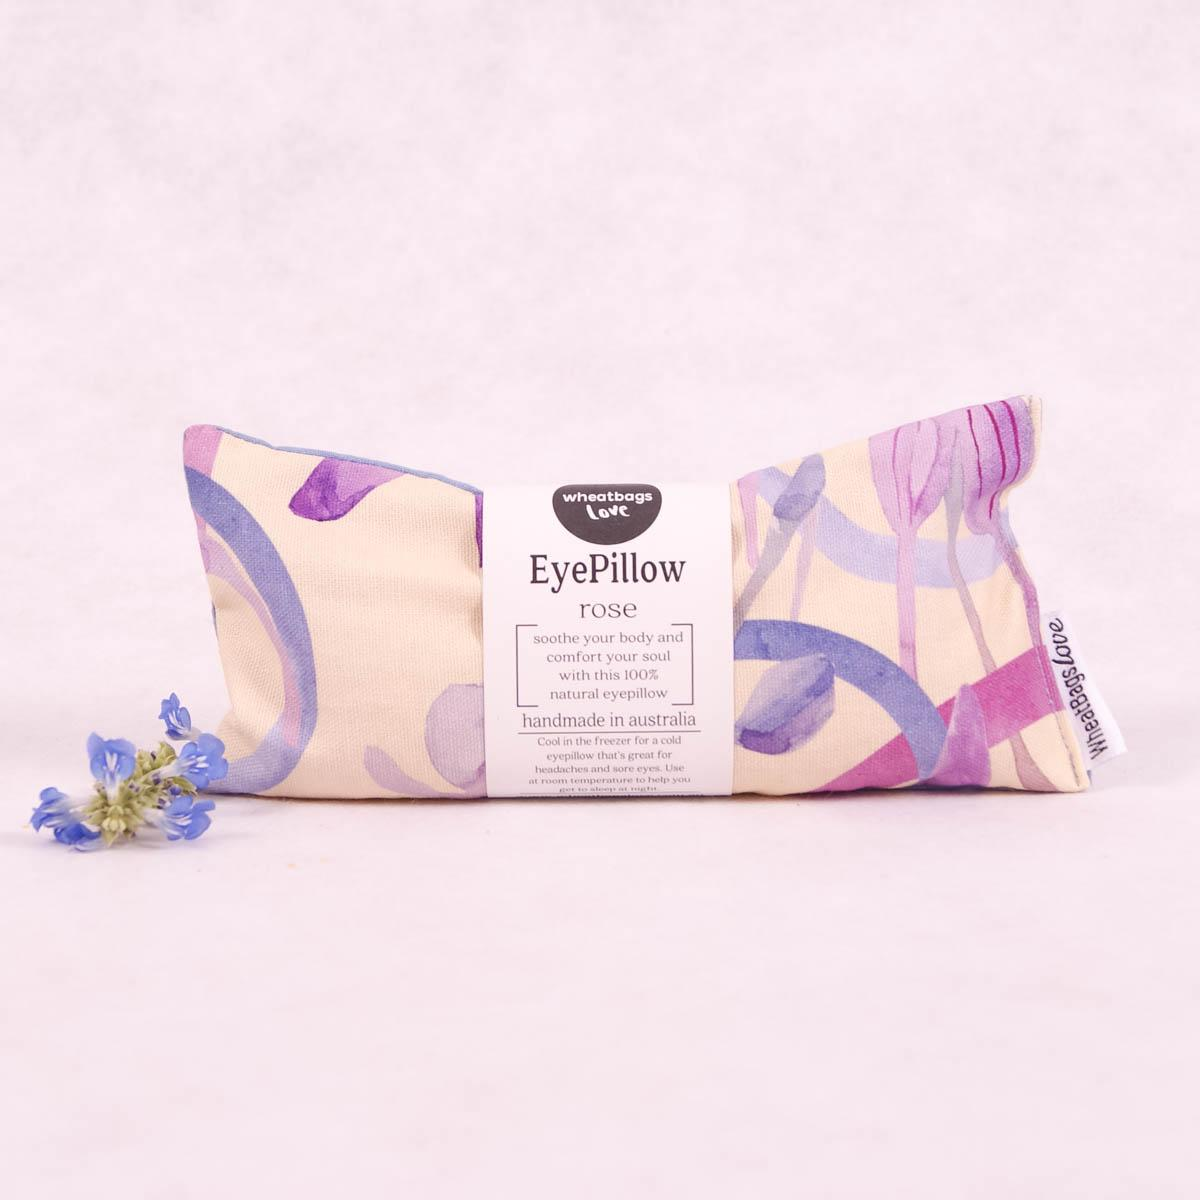 Wheatbags Love Eyepillow - Bush Orchid - Eyepillow - Throw Some Seeds - Australian gardening gifts and eco products online!